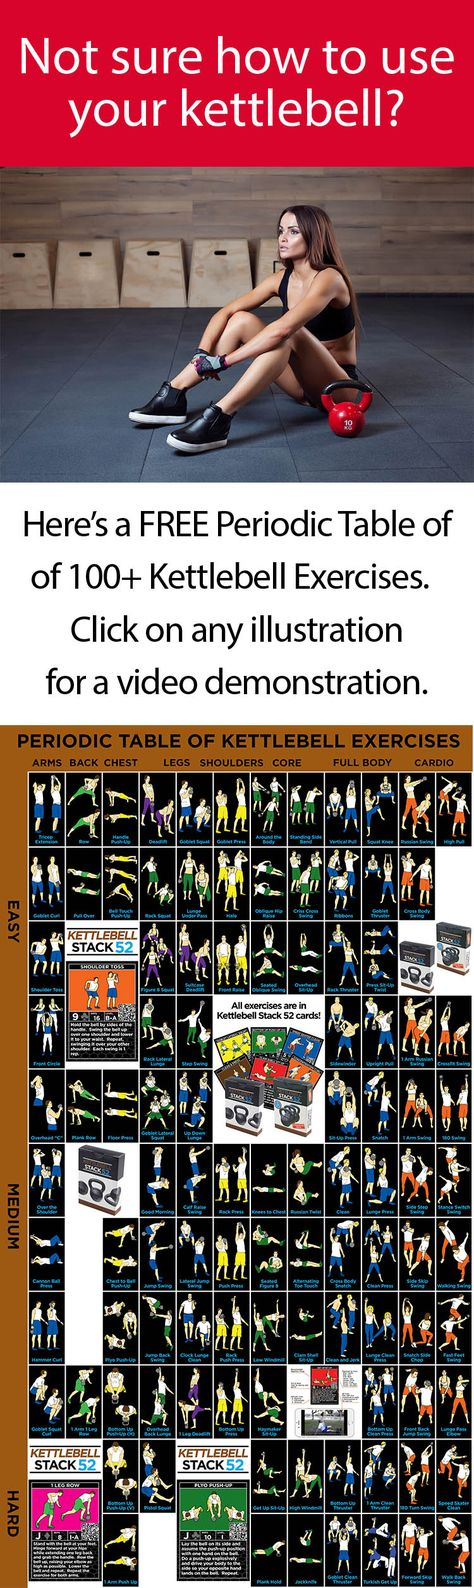 Kettlebell Workouts Are The Best HIIT Makes You Stronger Fitter And Burns Calories Like Crazy